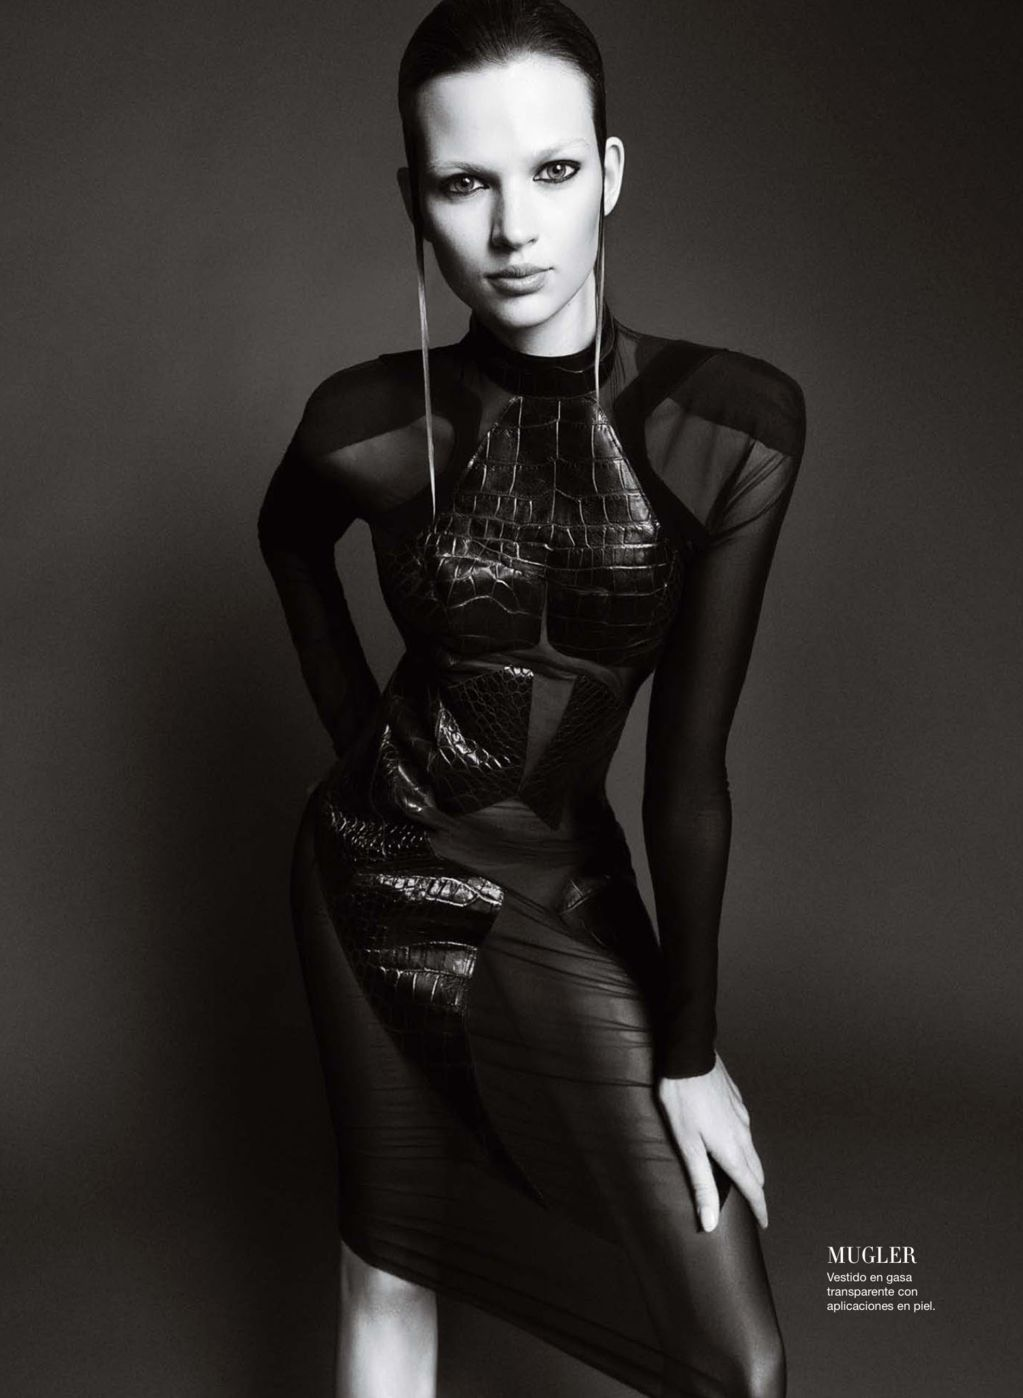 Mugler Fall 2012 RTW, Harper's Bazaar Spain October 2012. Photography Nico.